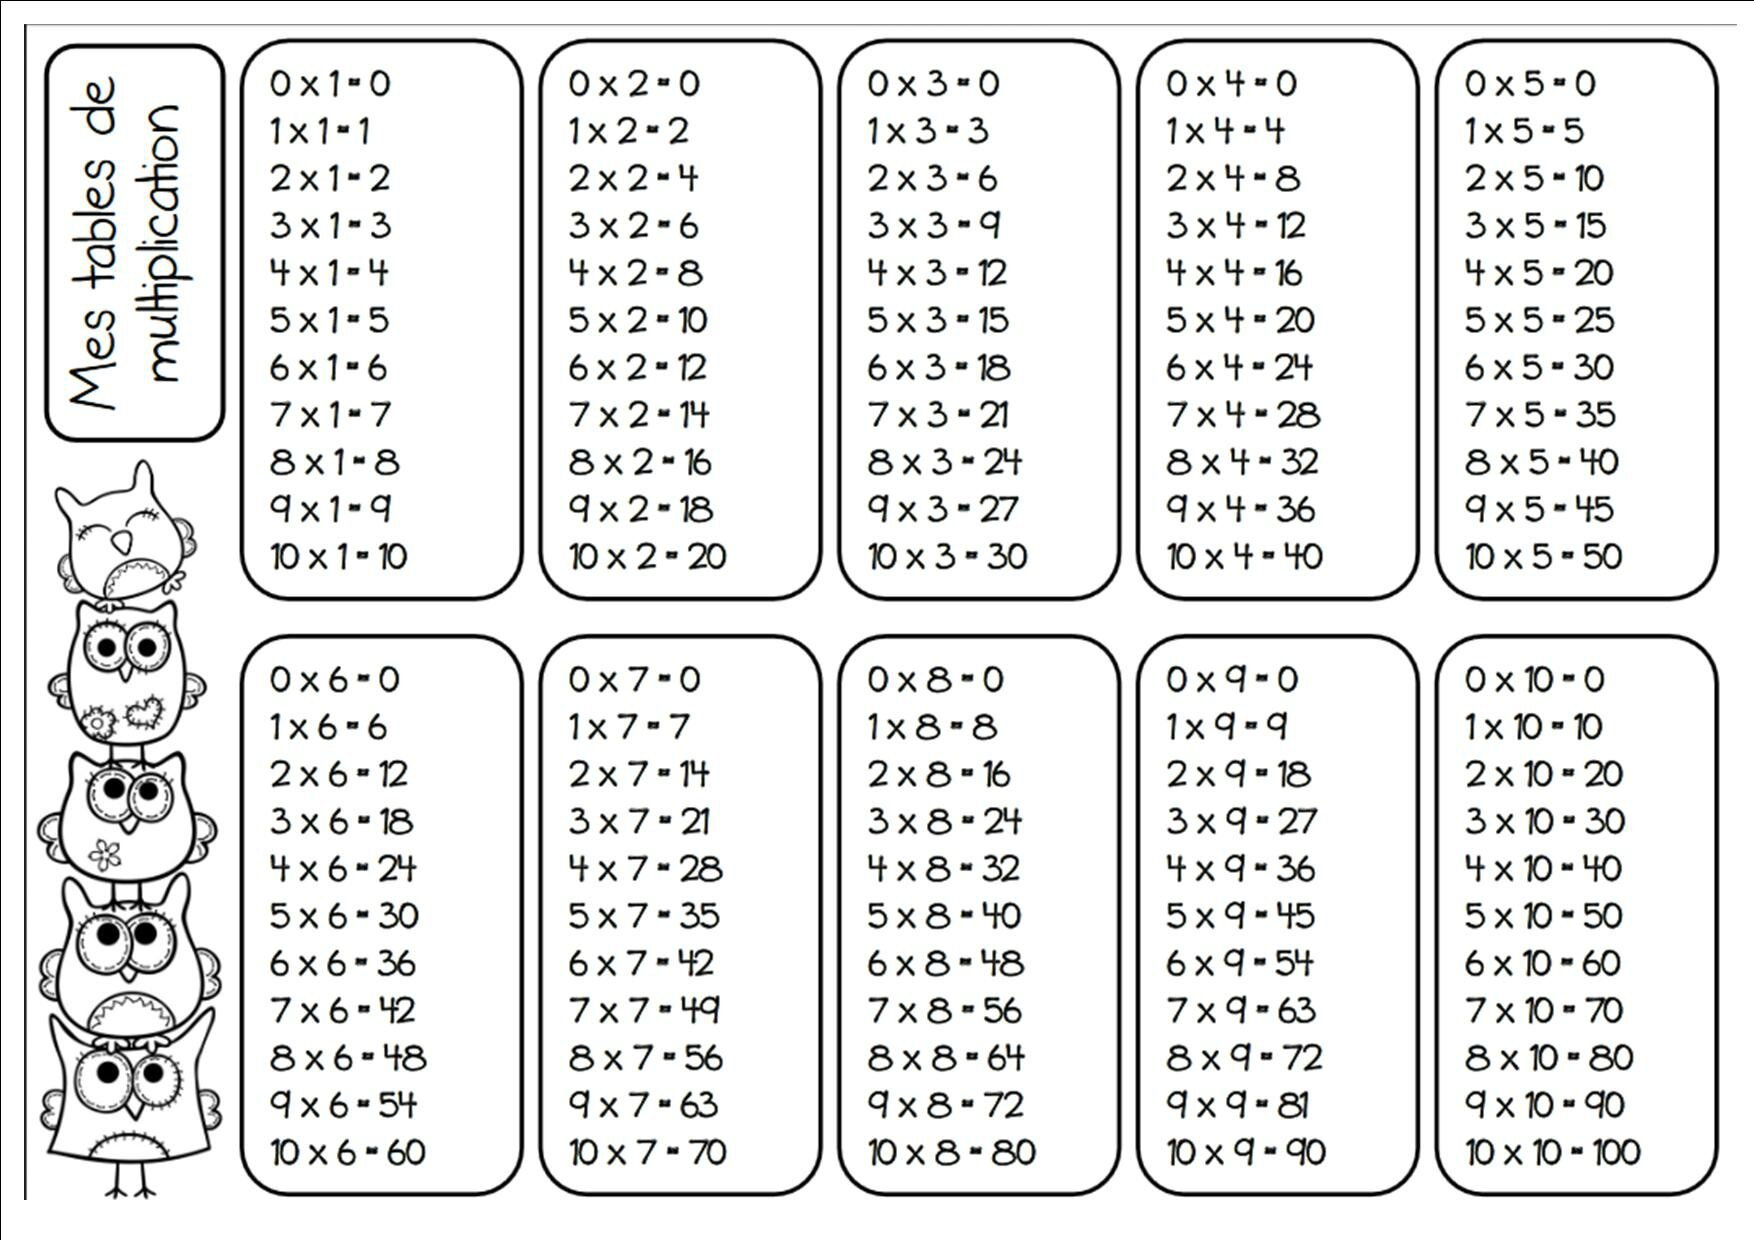 Table de multiplication ce2 - Reviser les tables de multiplications ce2 ...